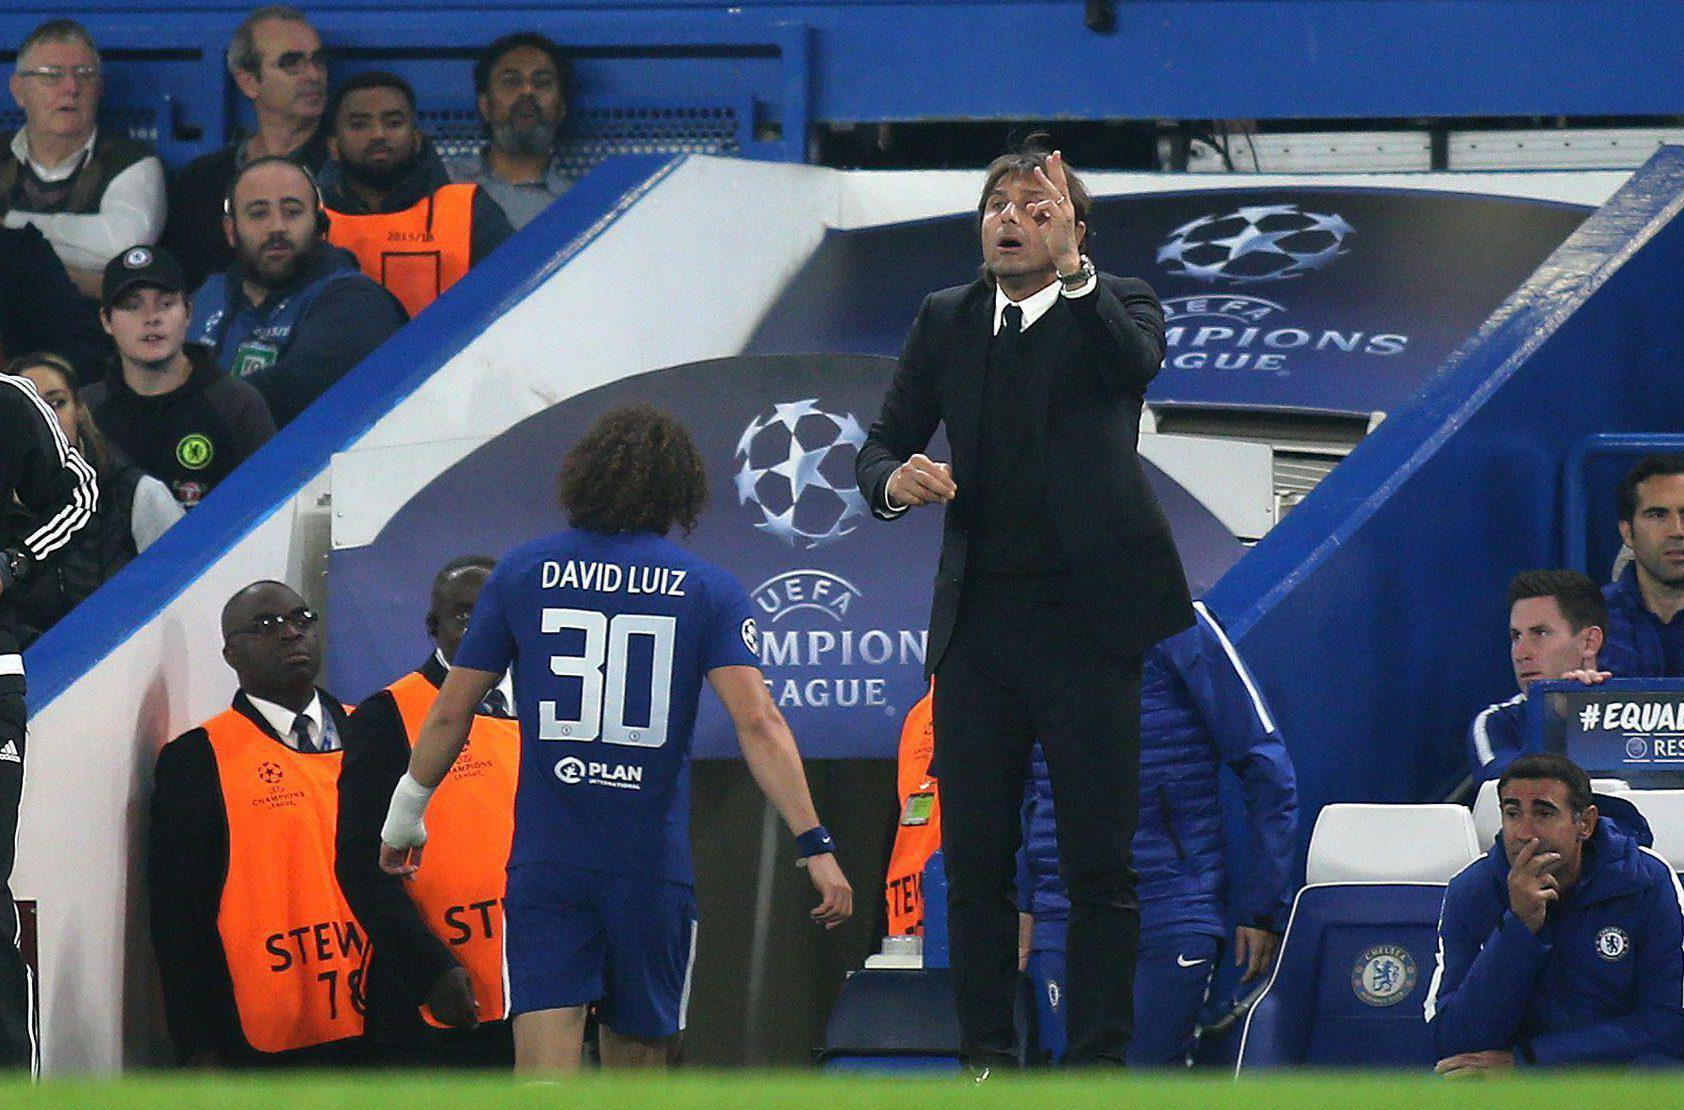 David Luiz became the latest player to suffer a muscle injury at Chelsea